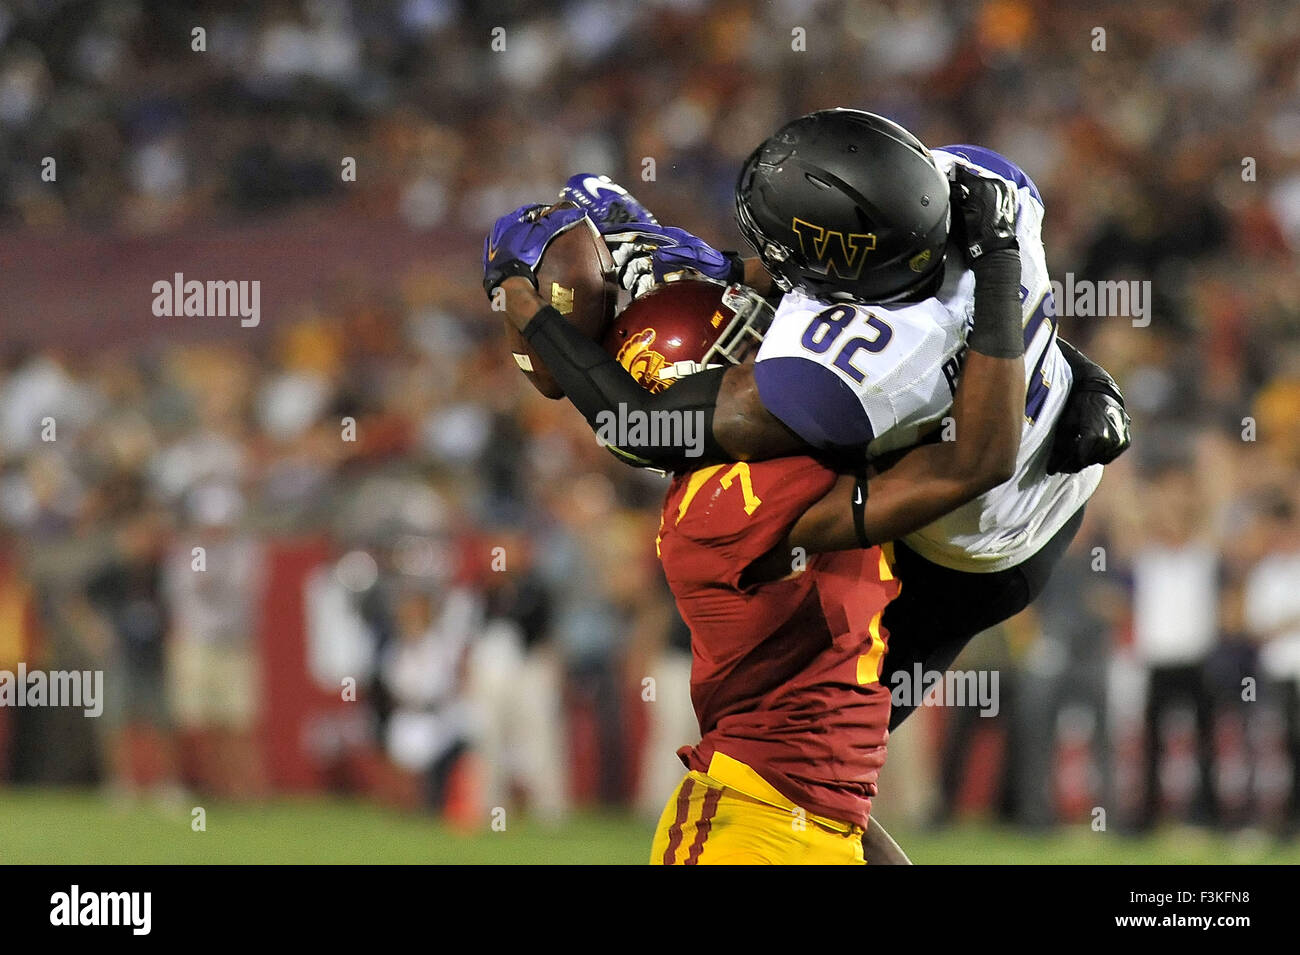 low priced 13675 63702 Los Angeles, CA, USA. 8th Oct, 2015. USC Trojans safety ...